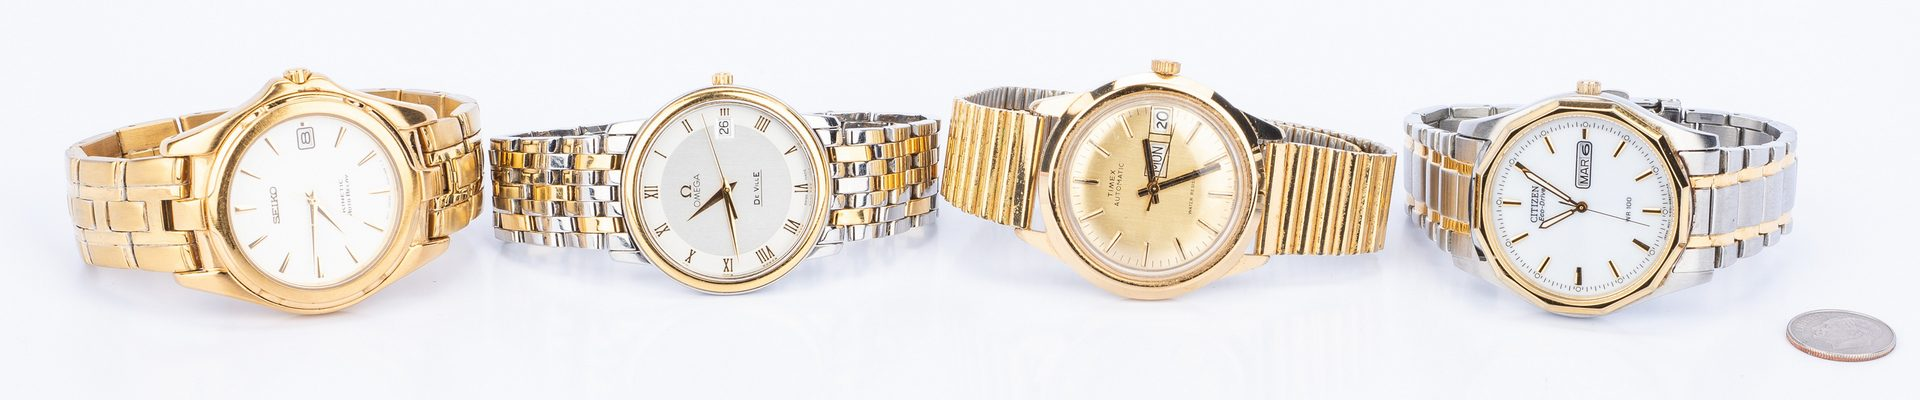 Lot 147: Group of 4 Gents Watches incl. Omega